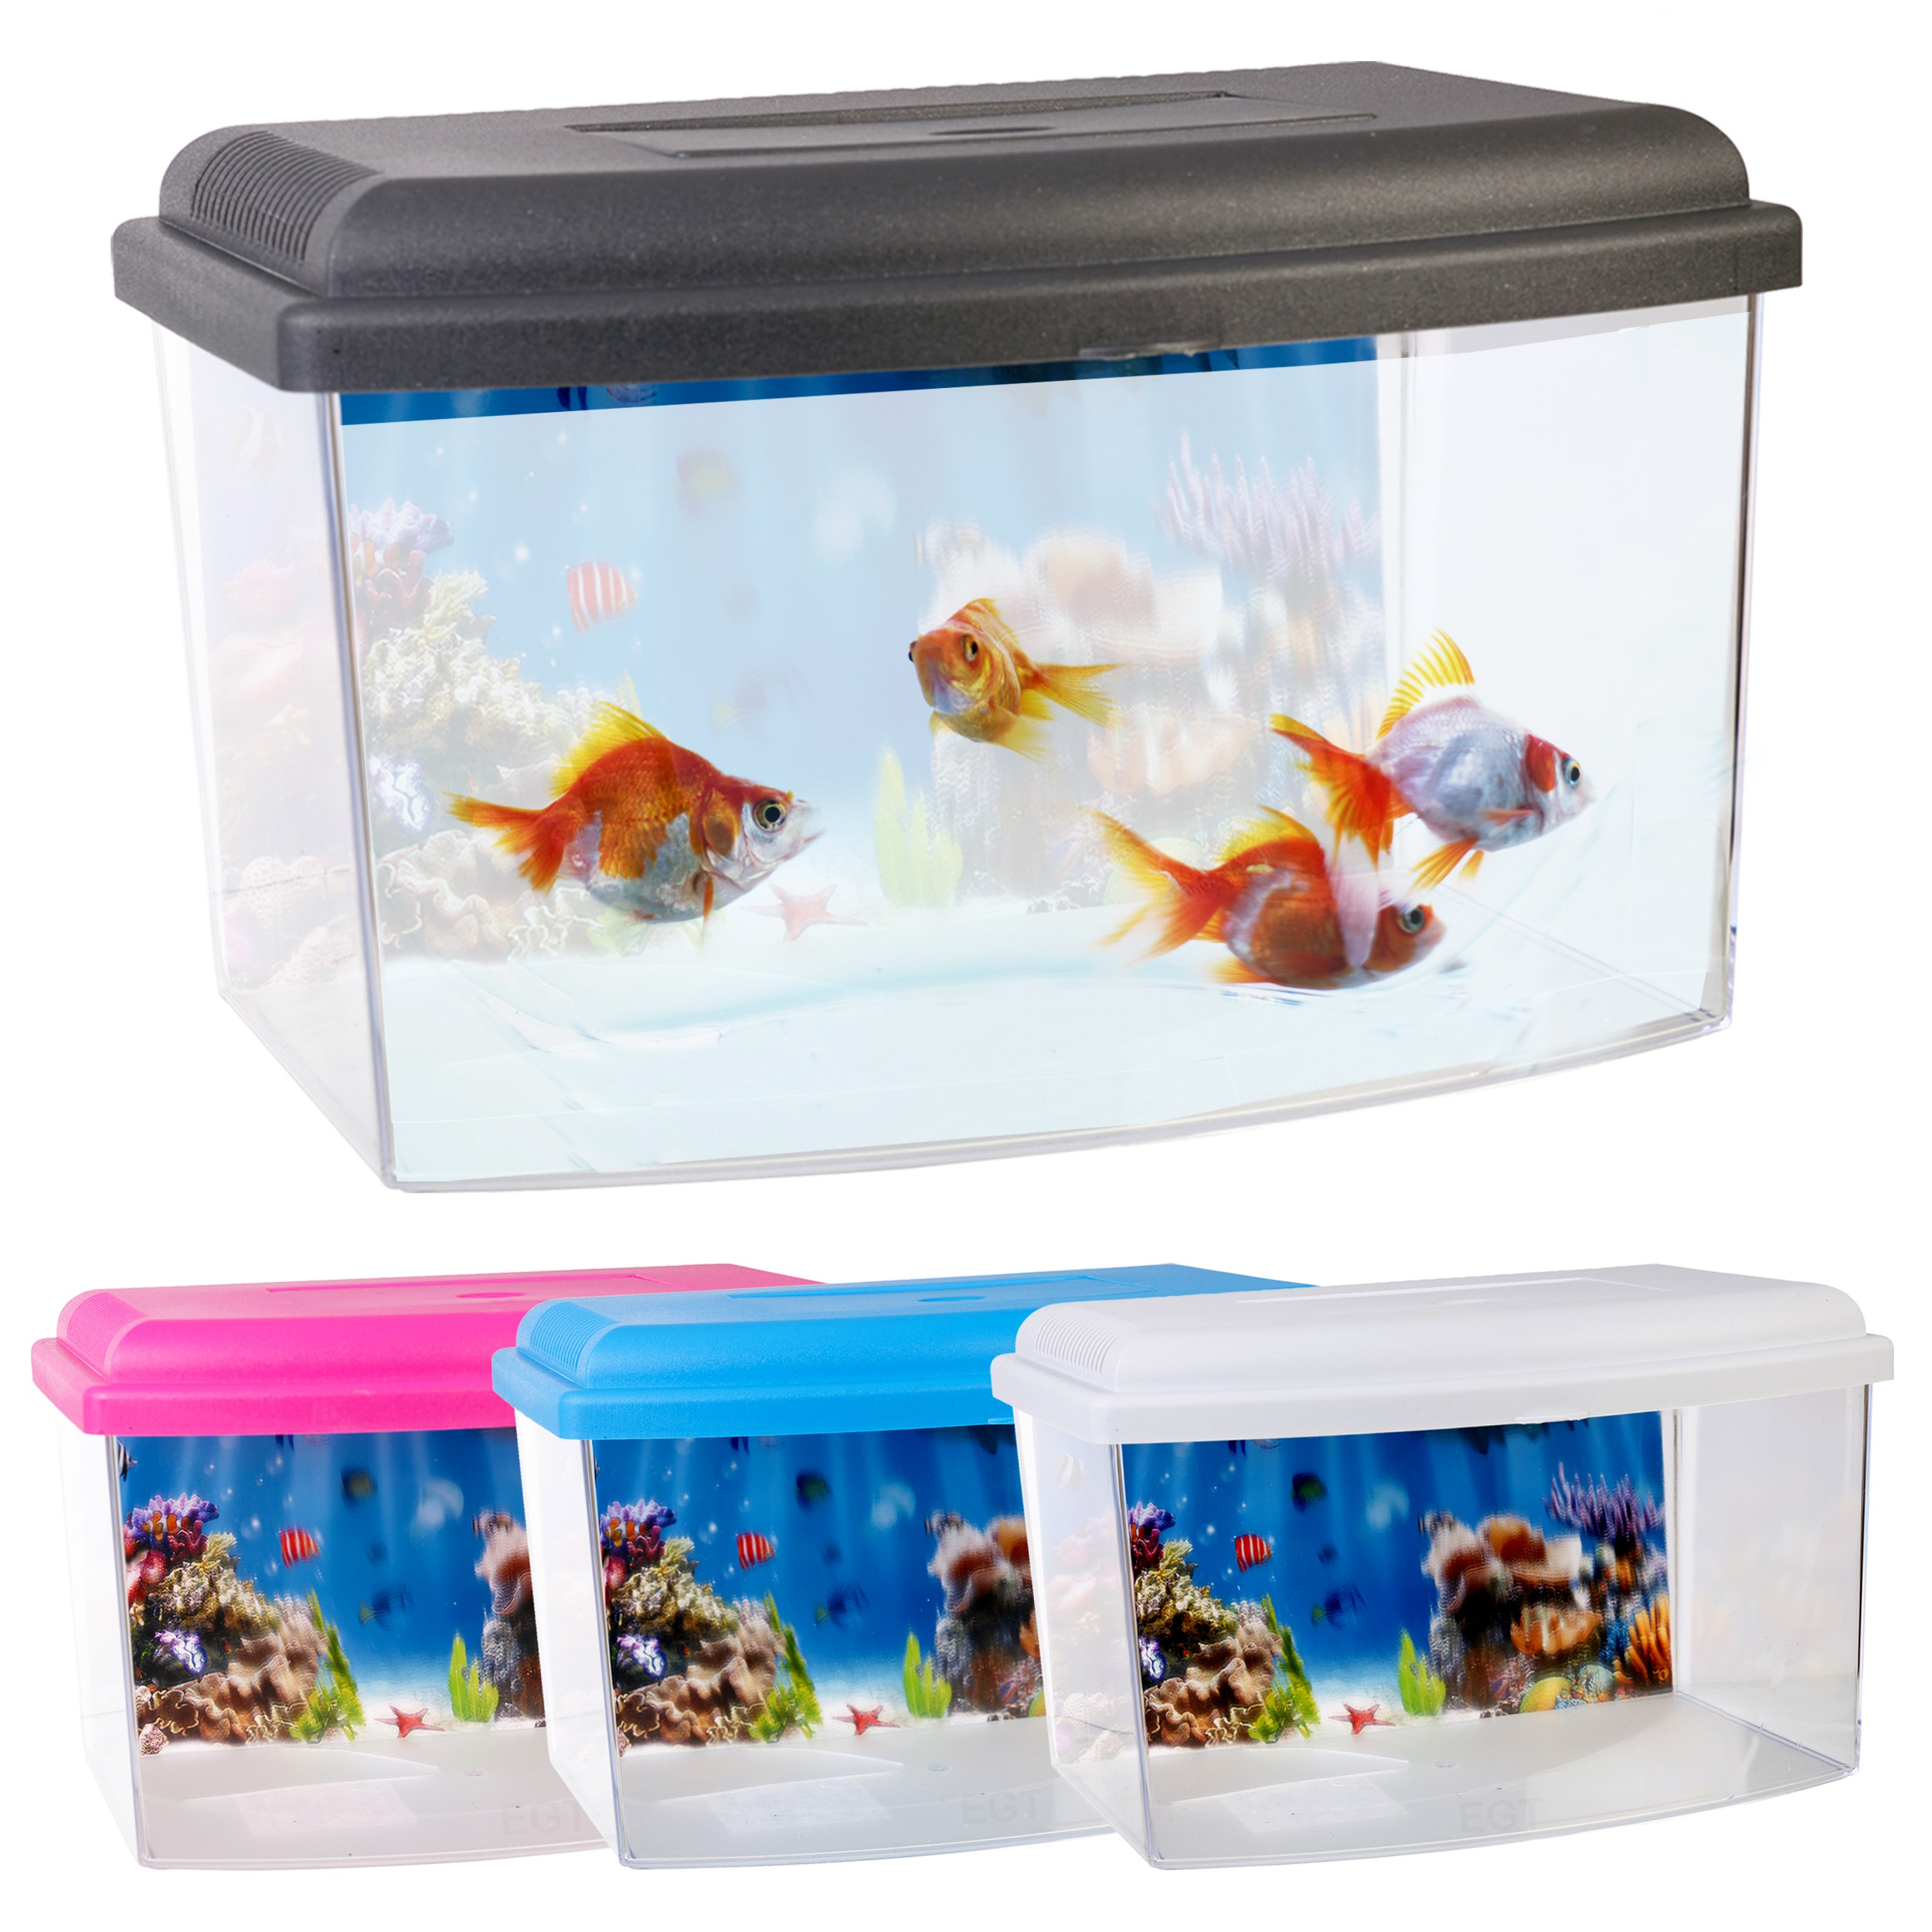 kinder starter aquarium mit deckel griff 2 5 liter kapazit t fisch tank neu ebay. Black Bedroom Furniture Sets. Home Design Ideas